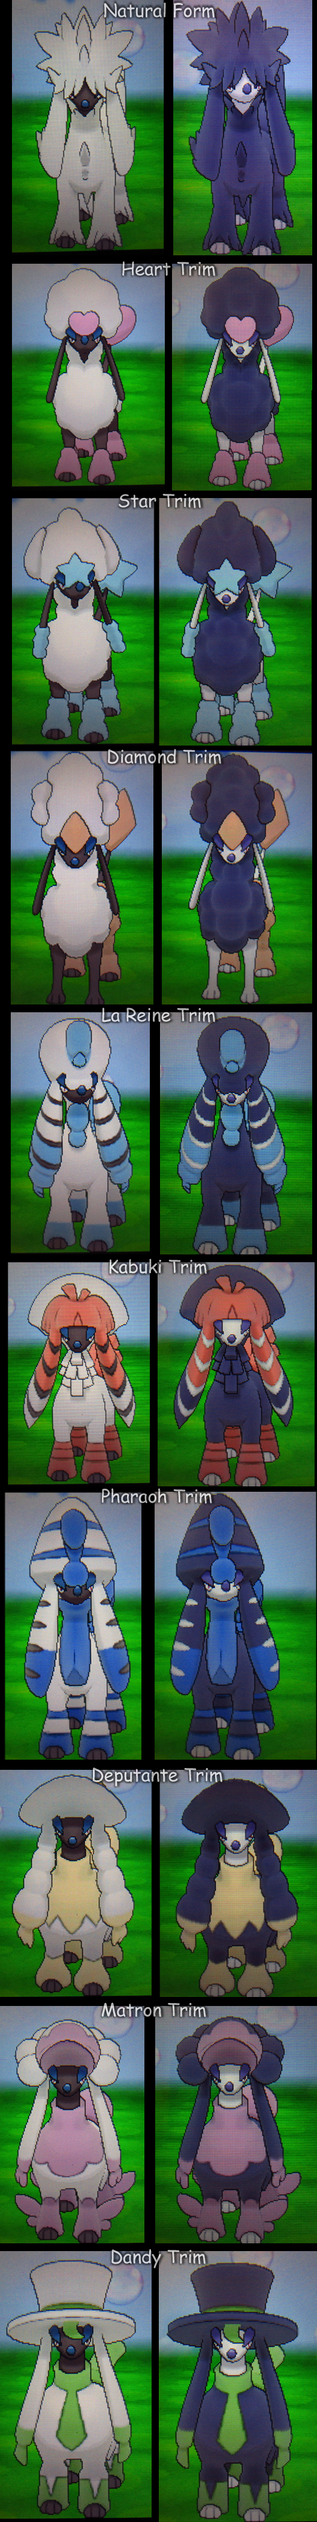 Pokemon XY - All Furfrou Trims! (Normal + Shiny) by Sapphiresenthiss ...